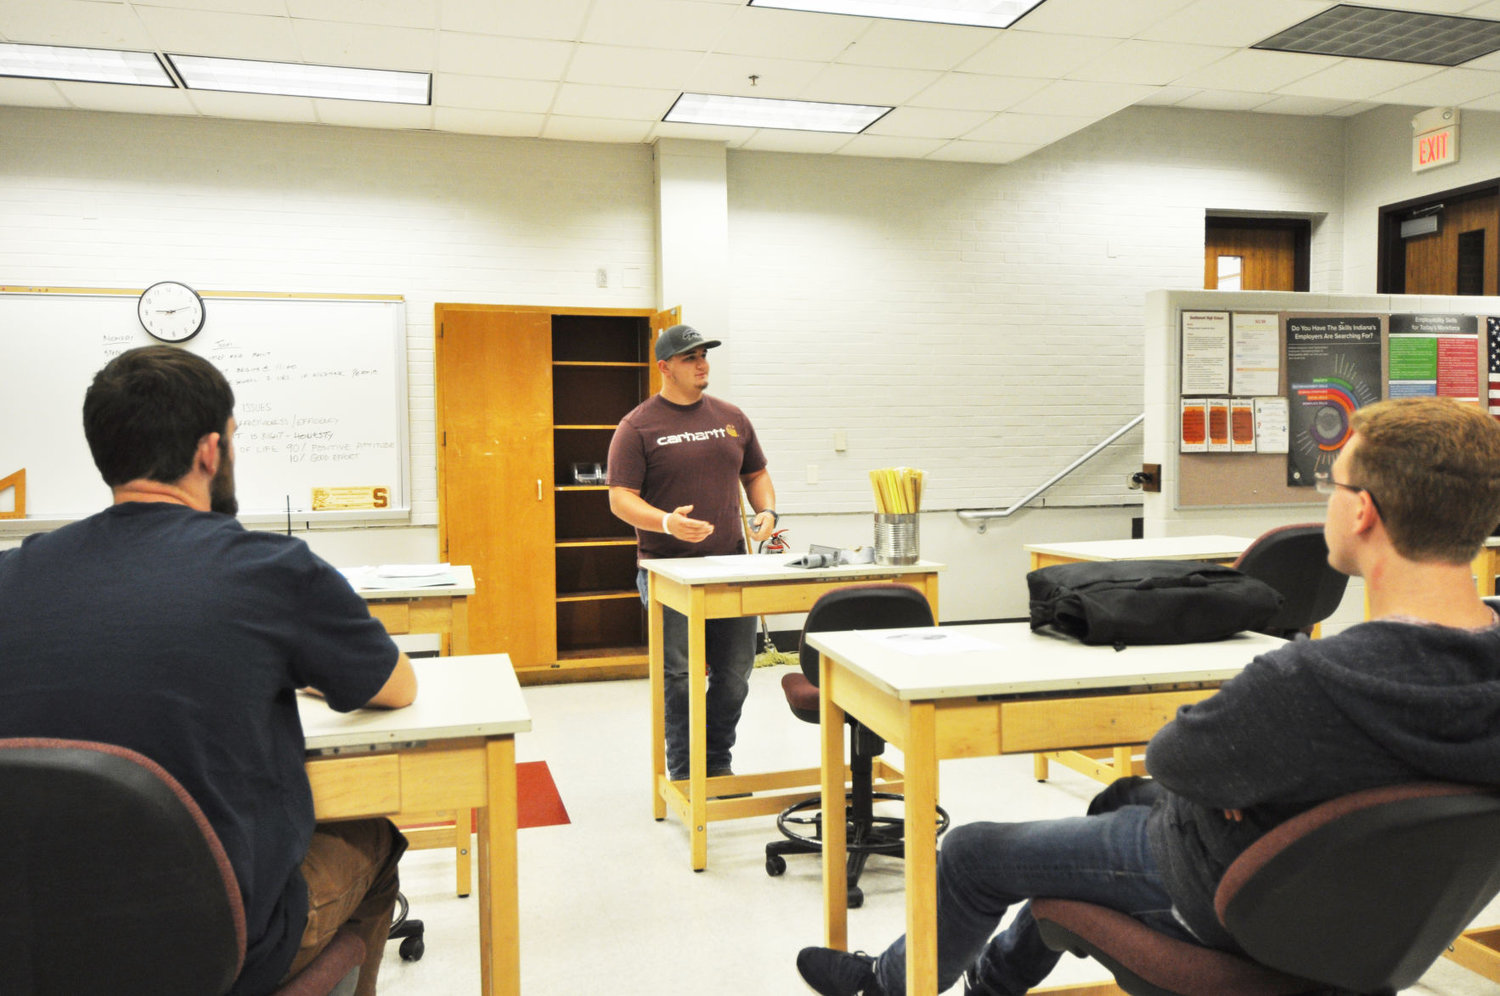 Elijah Sparks speaks to the West Central Indiana Career and Technical Education Cooperative's advanced manufacturing class Friday at Southmont High School. Sparks is training to become an electrician at Nucor Steel's technical academy.